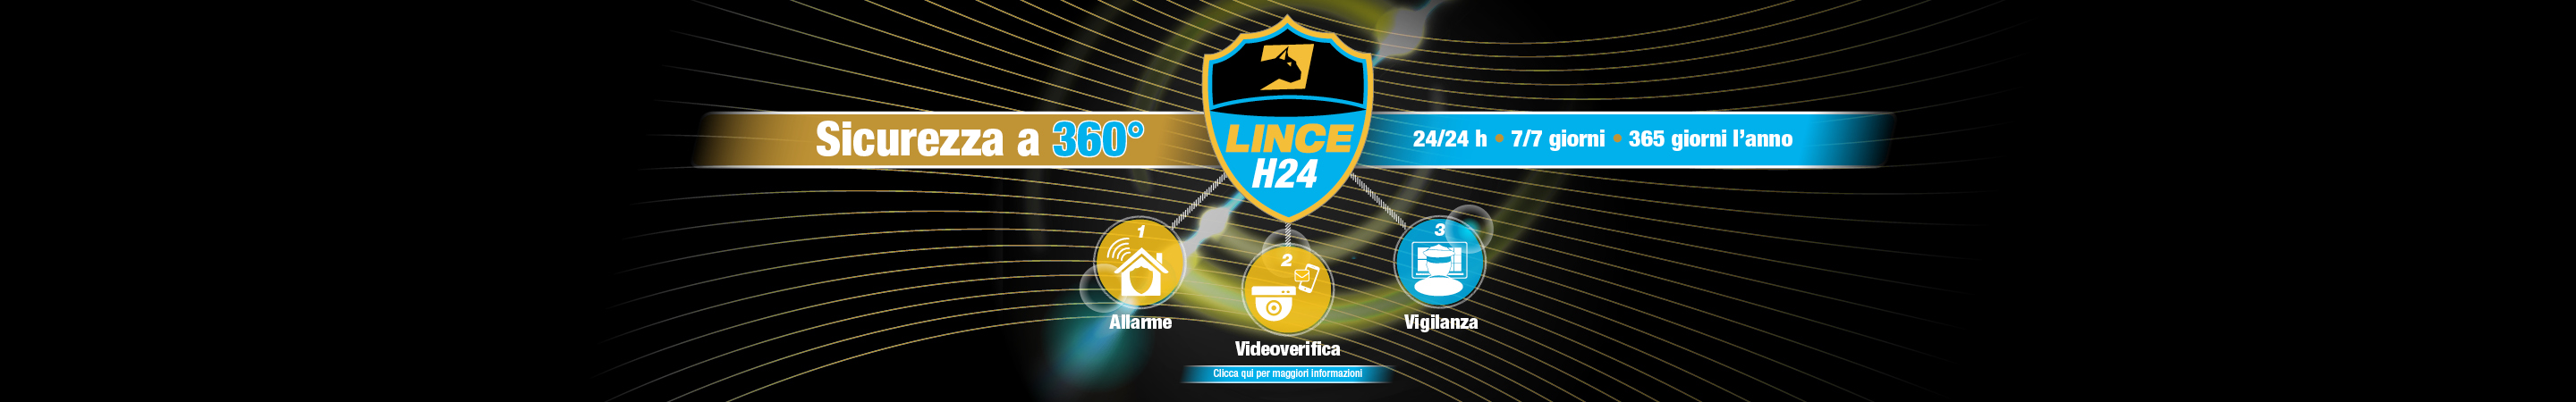 Linceh24banner